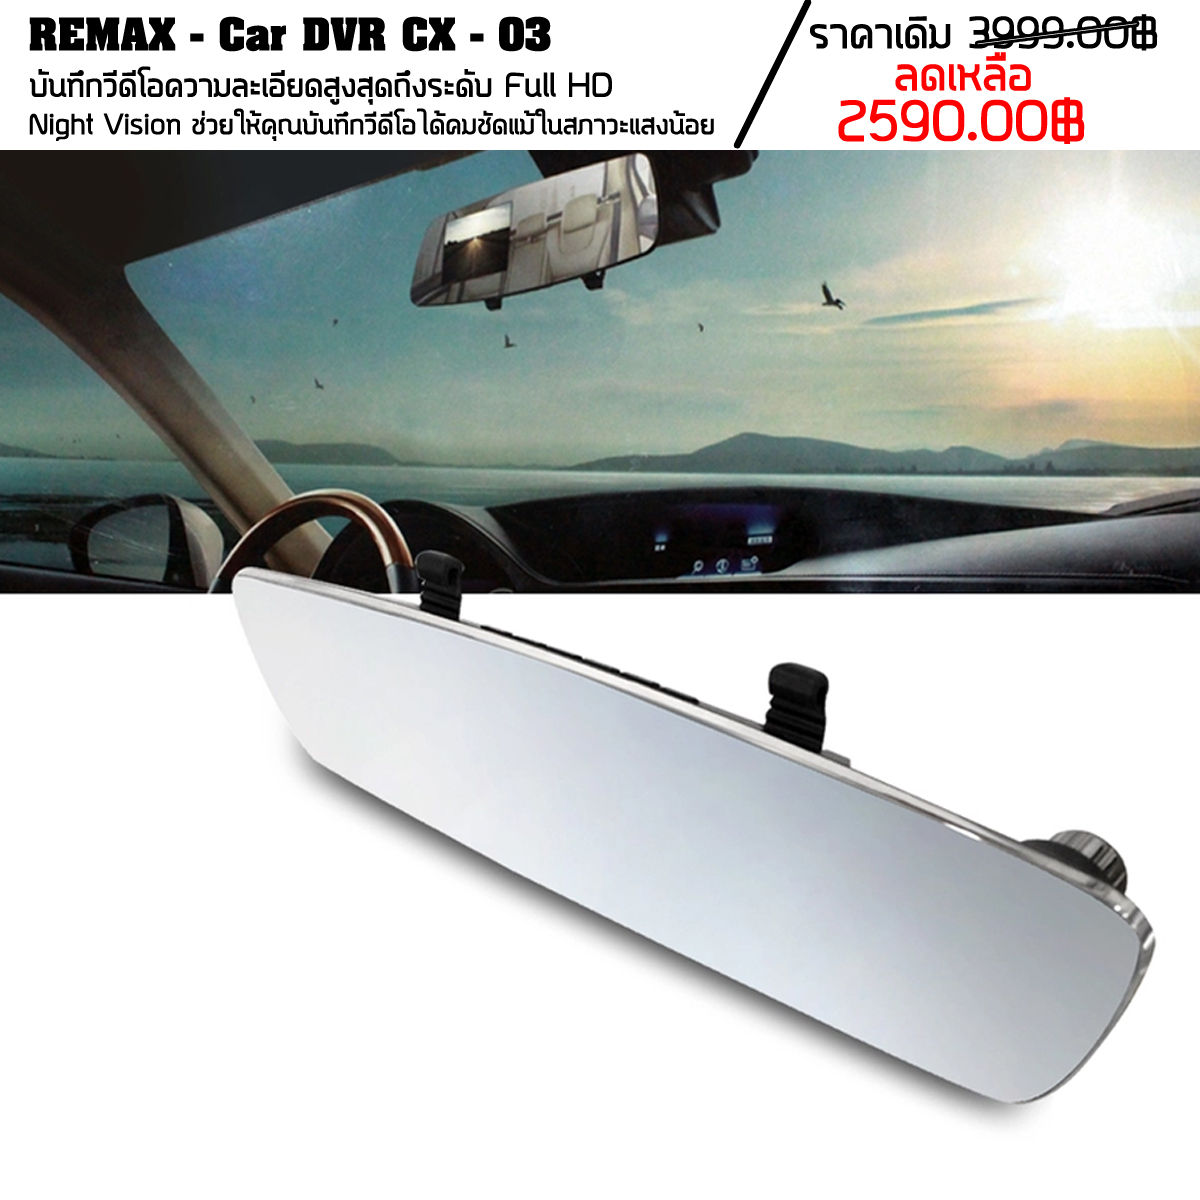 REMAX – Car DVR CX – 03